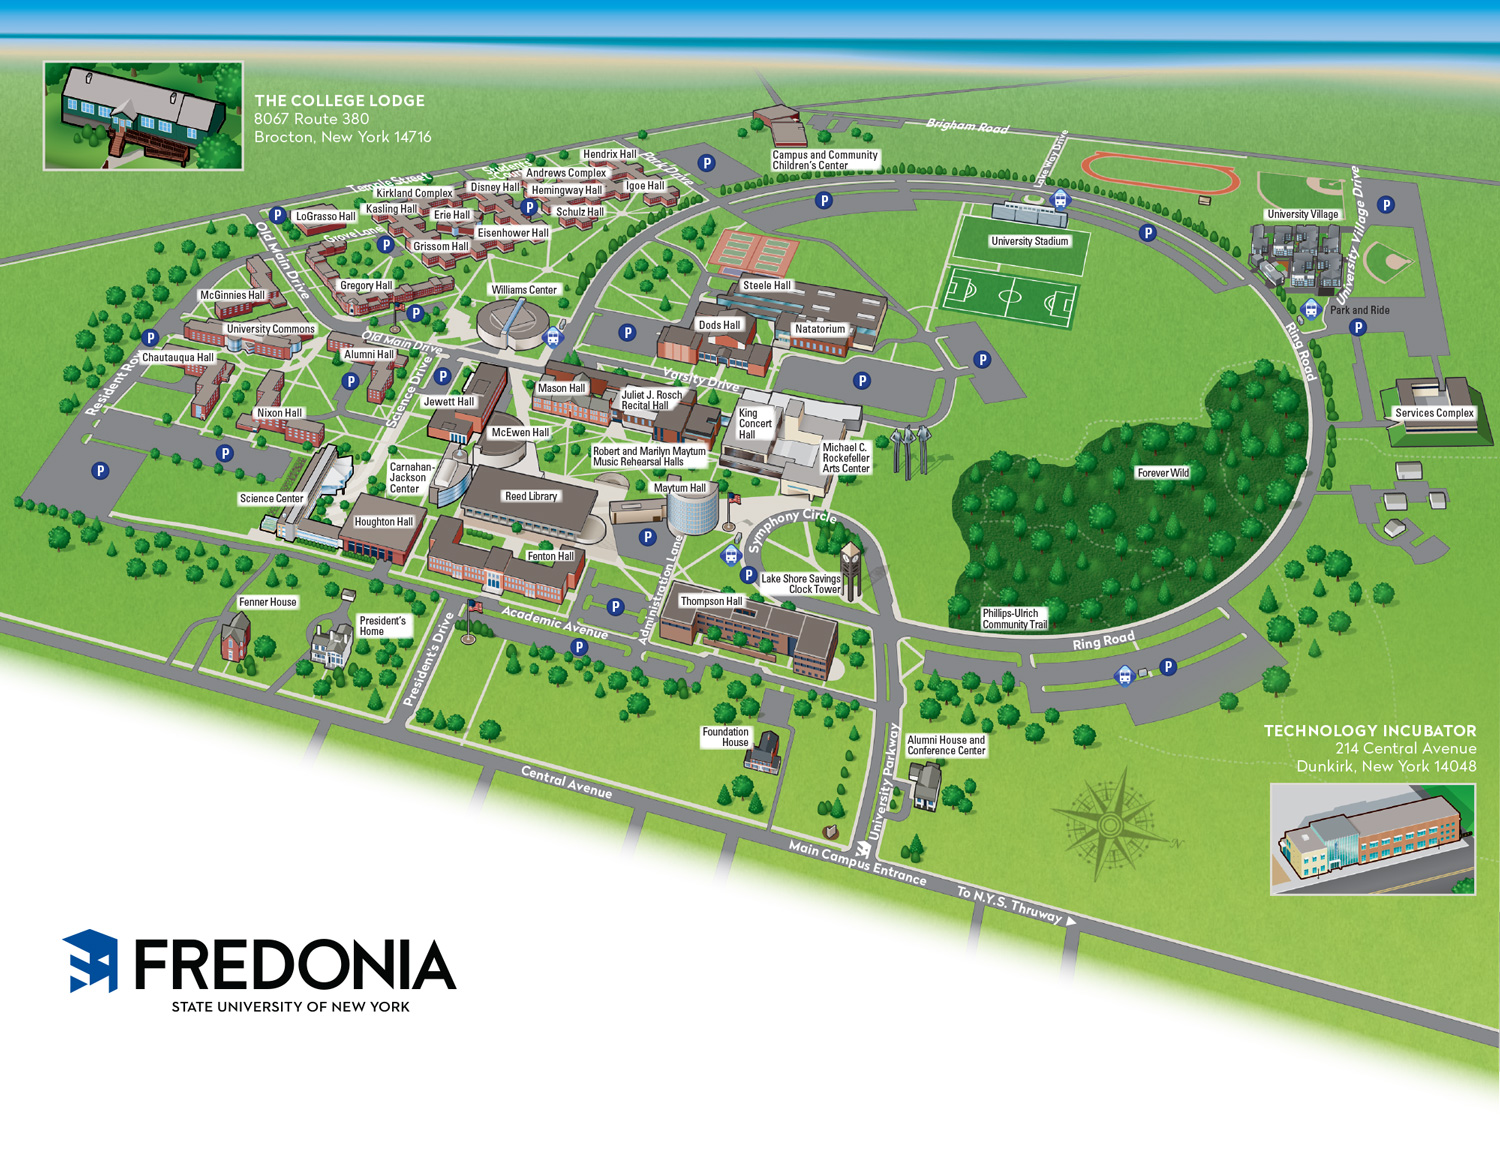 Fredonia City   United States HD Wallpapers and Photos